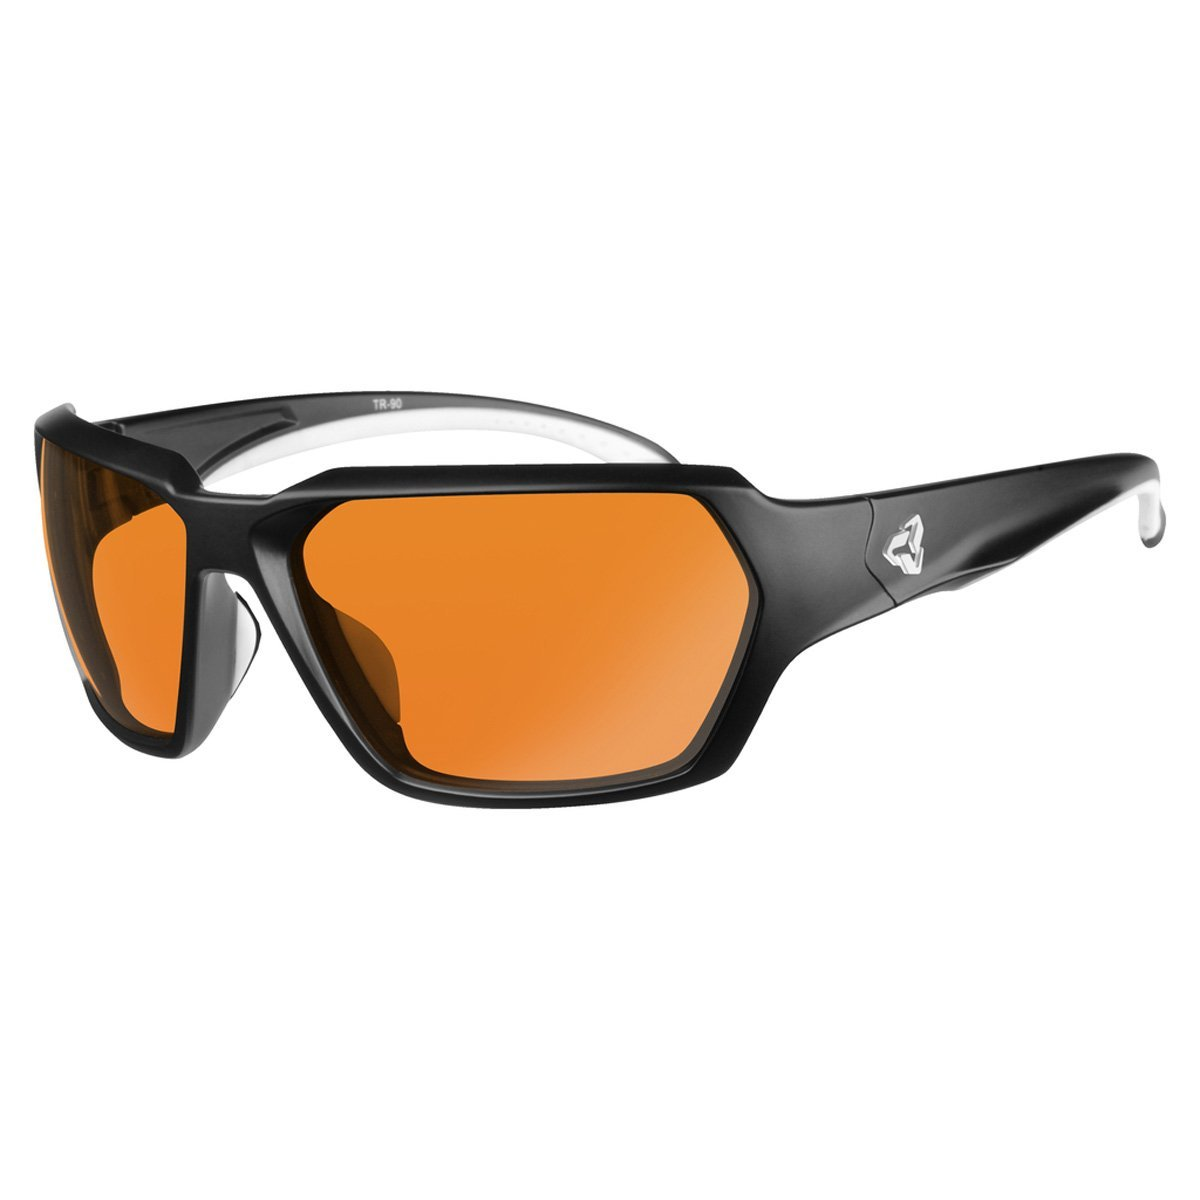 Ryders Face Anti-Fog Photochromic